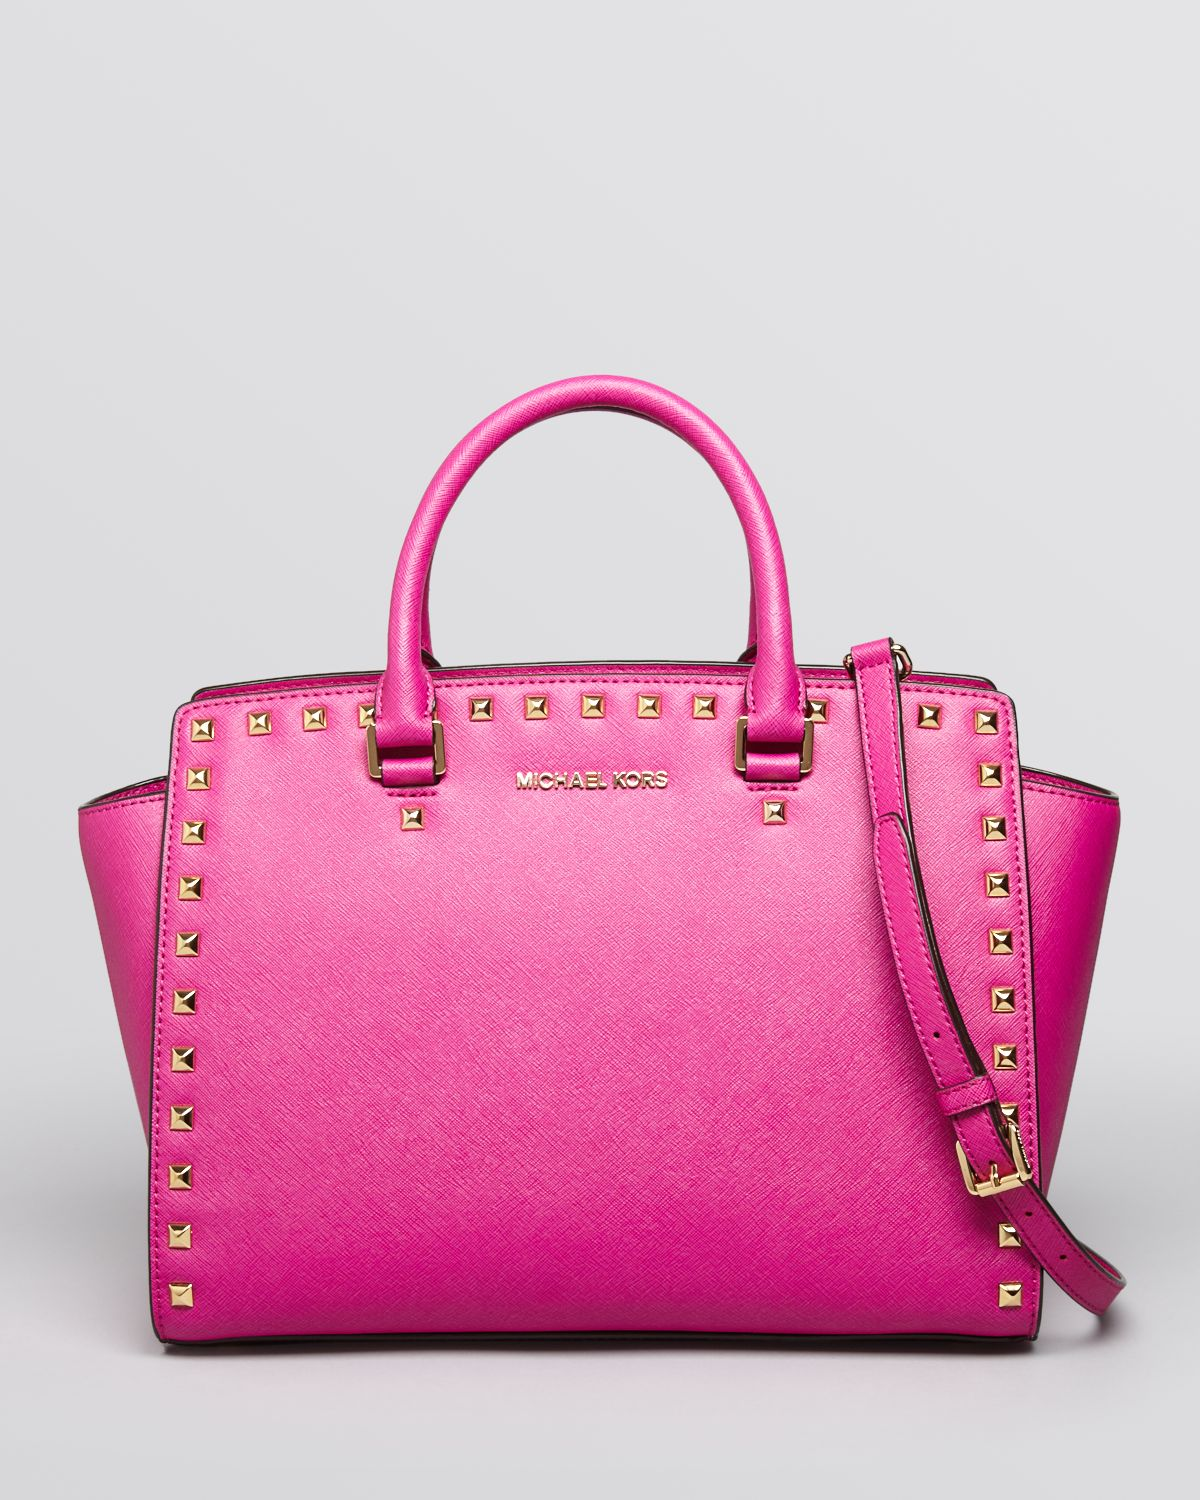 9b2a47198e48 Gallery. Previously sold at: Bloomingdale's · Women's Michael By Michael  Kors Selma